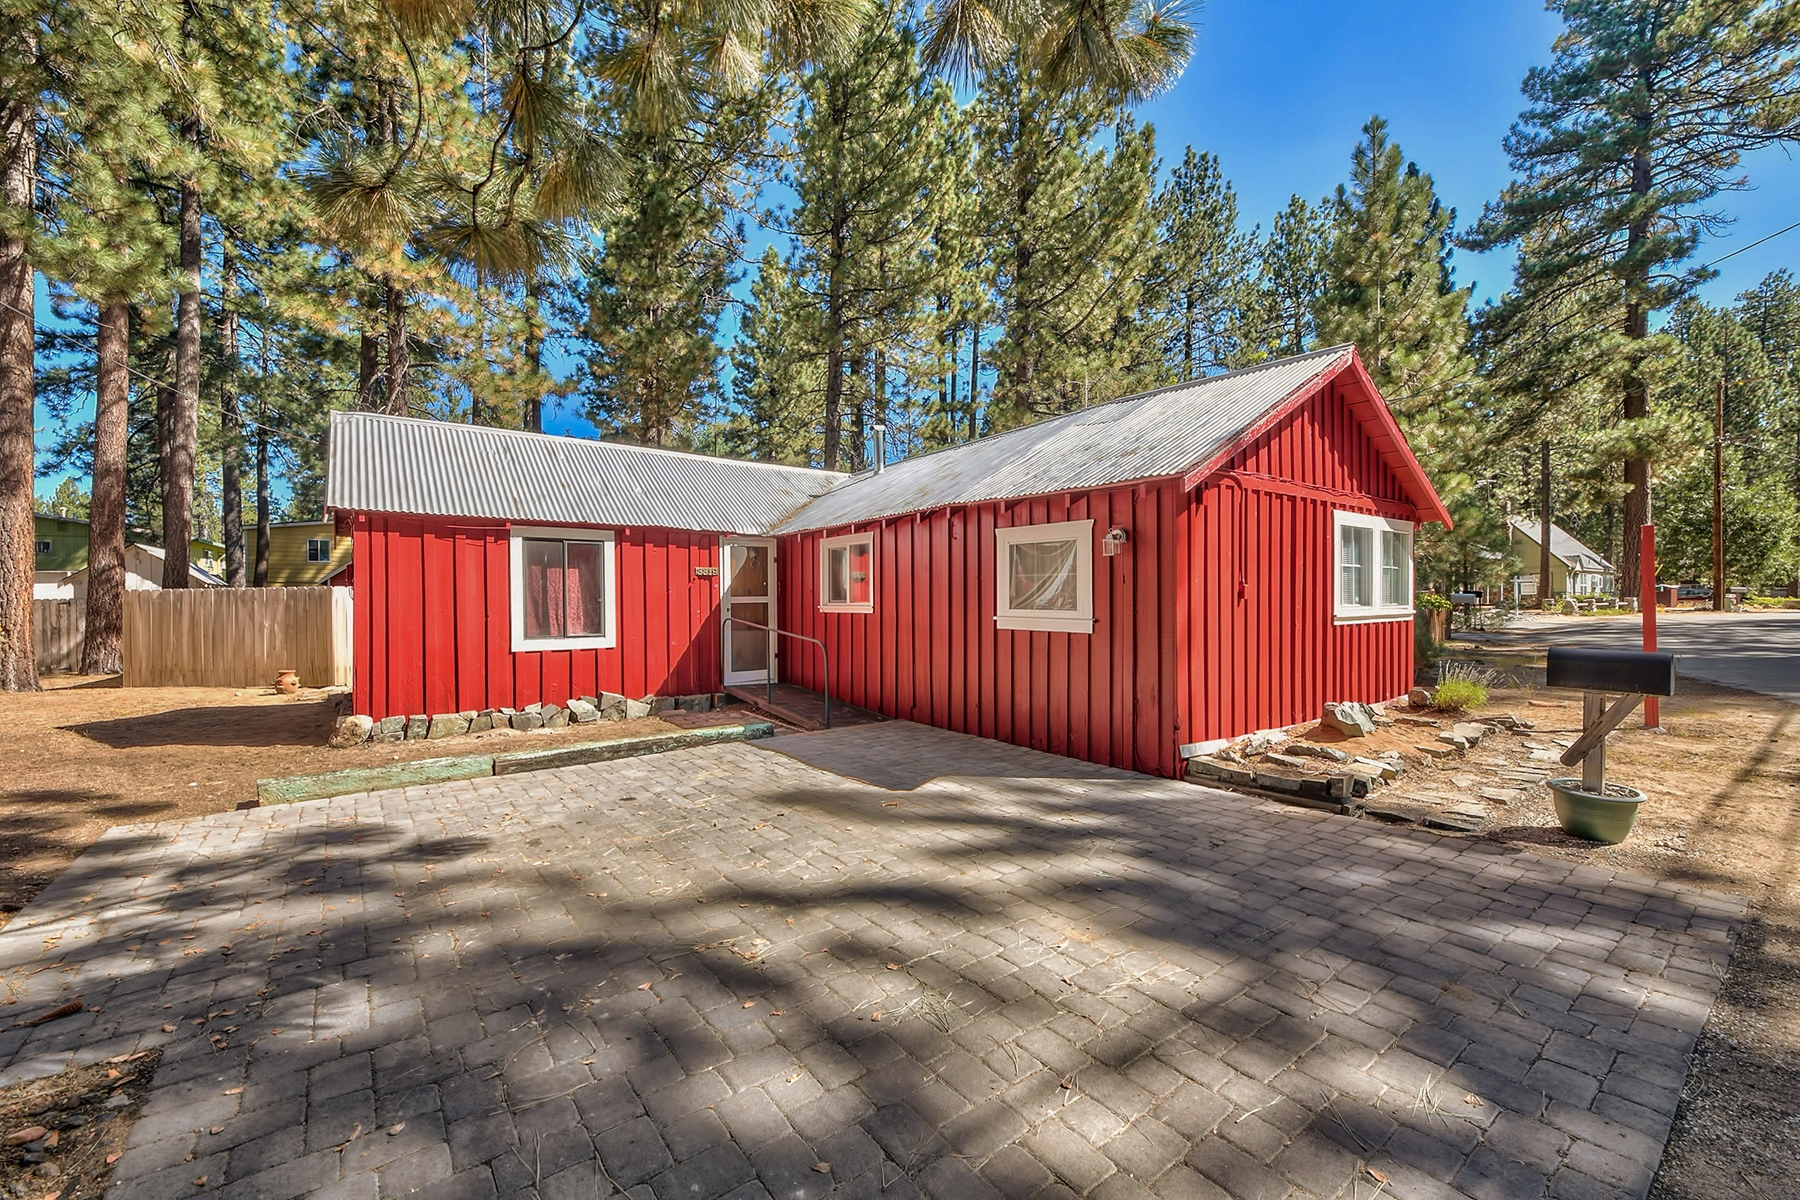 Single Family Home for Active at 3319 Deer Park Ave, South Lake Tahoe, Ca, 96150 3319 Deer Park Avenue South Lake Tahoe, California 96150 United States